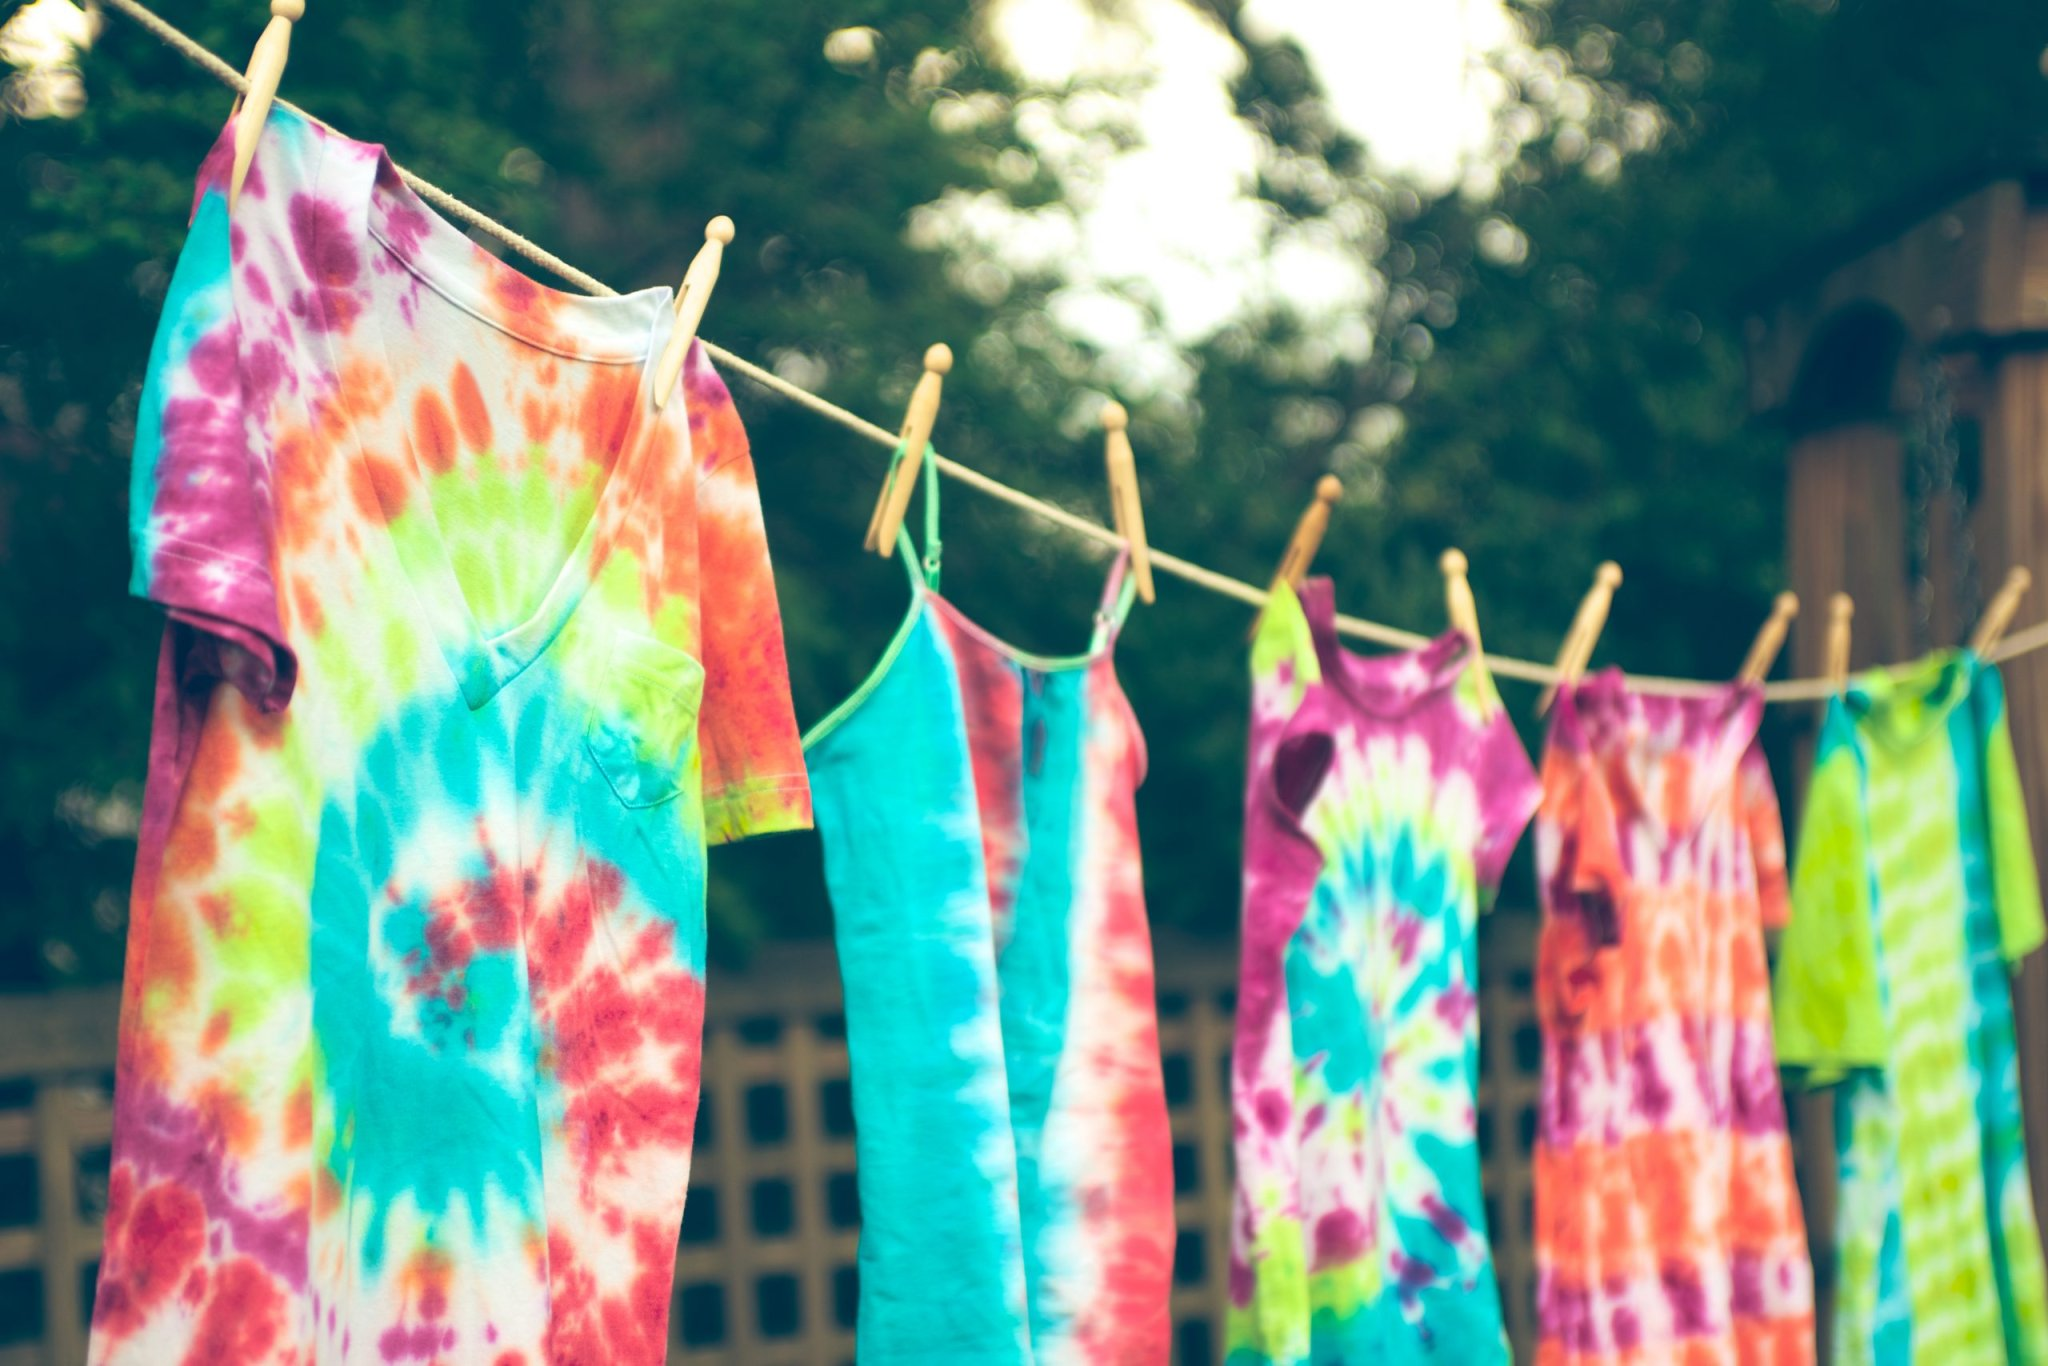 How to tie dye t-shirts step-by-step